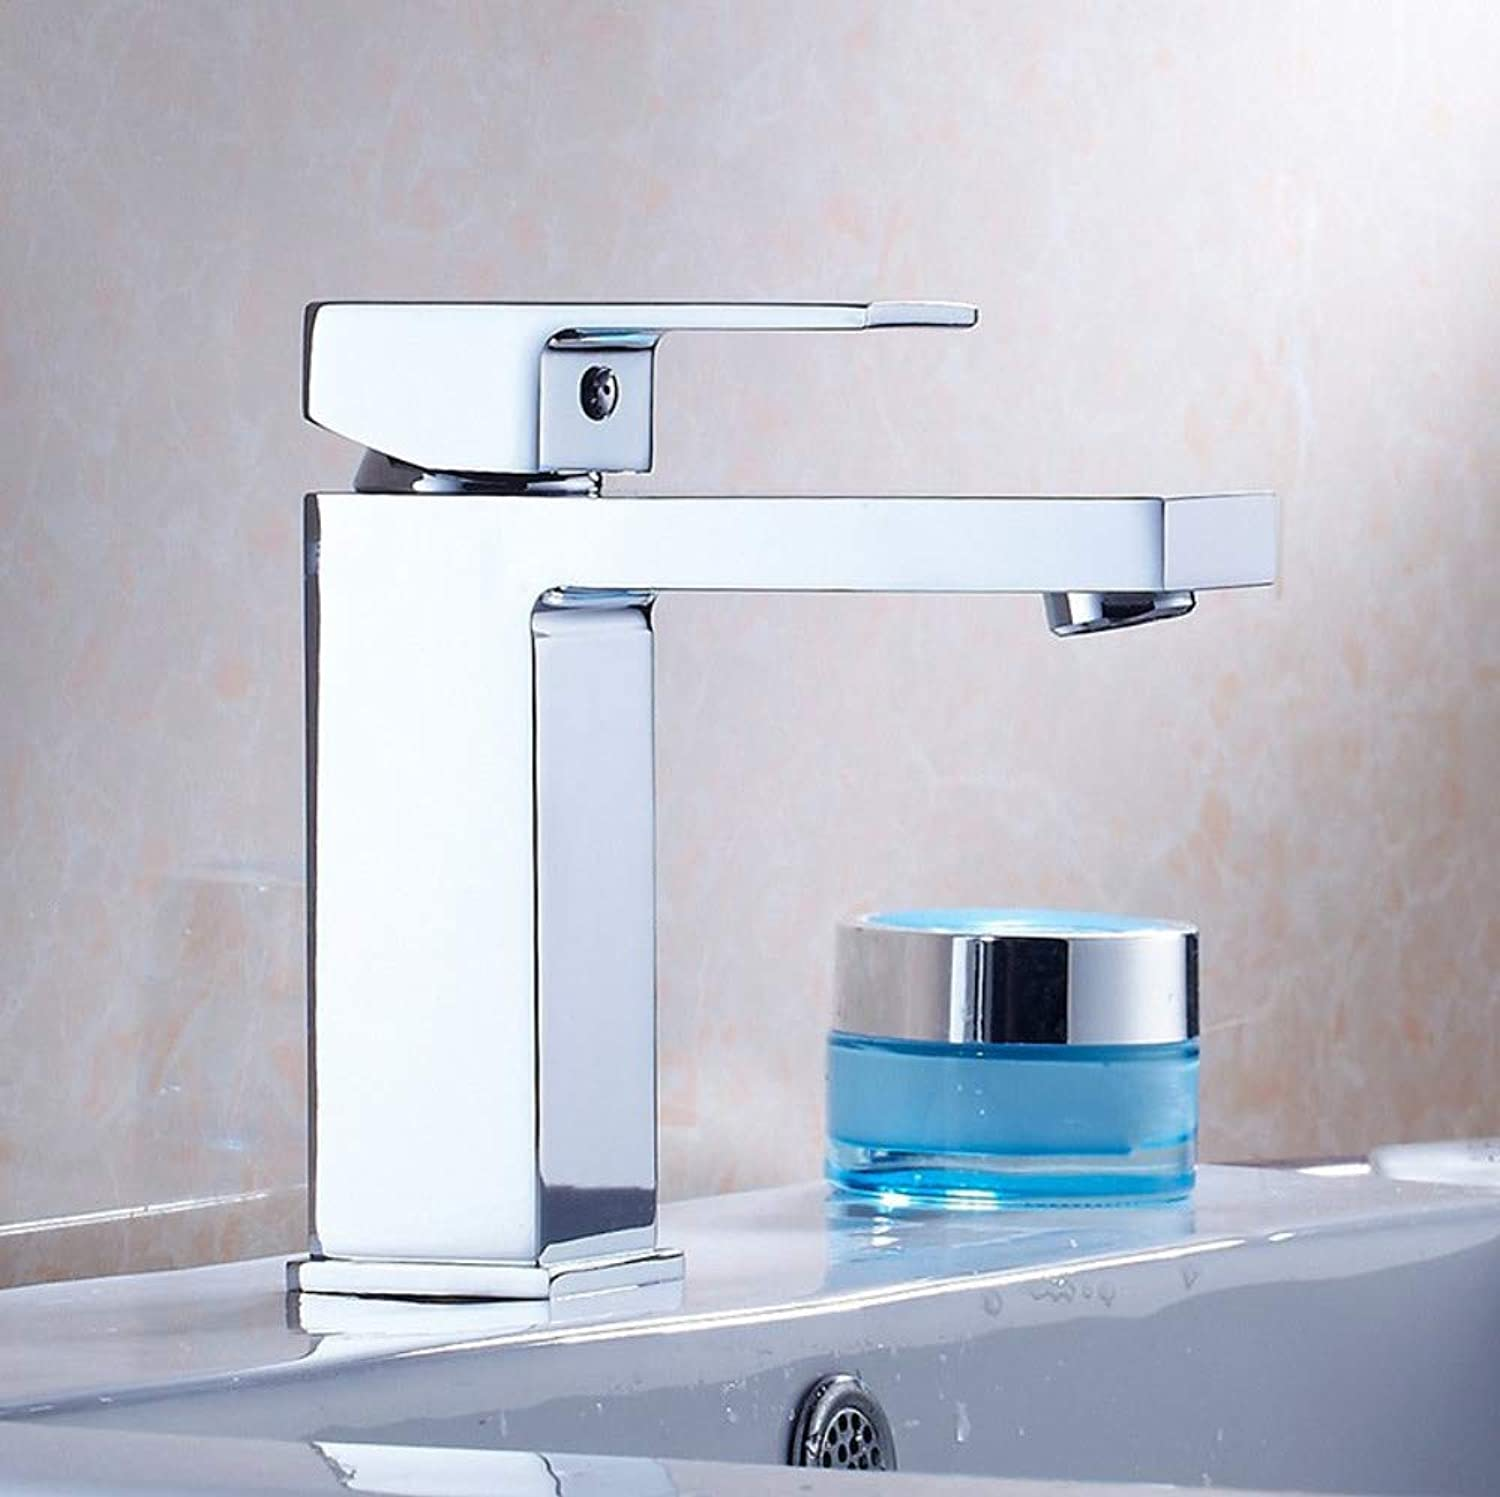 redOOY Faucet Taps Basin Faucet Basin Faucet Bathroom Cabinet Square Hot And Cold Thickening